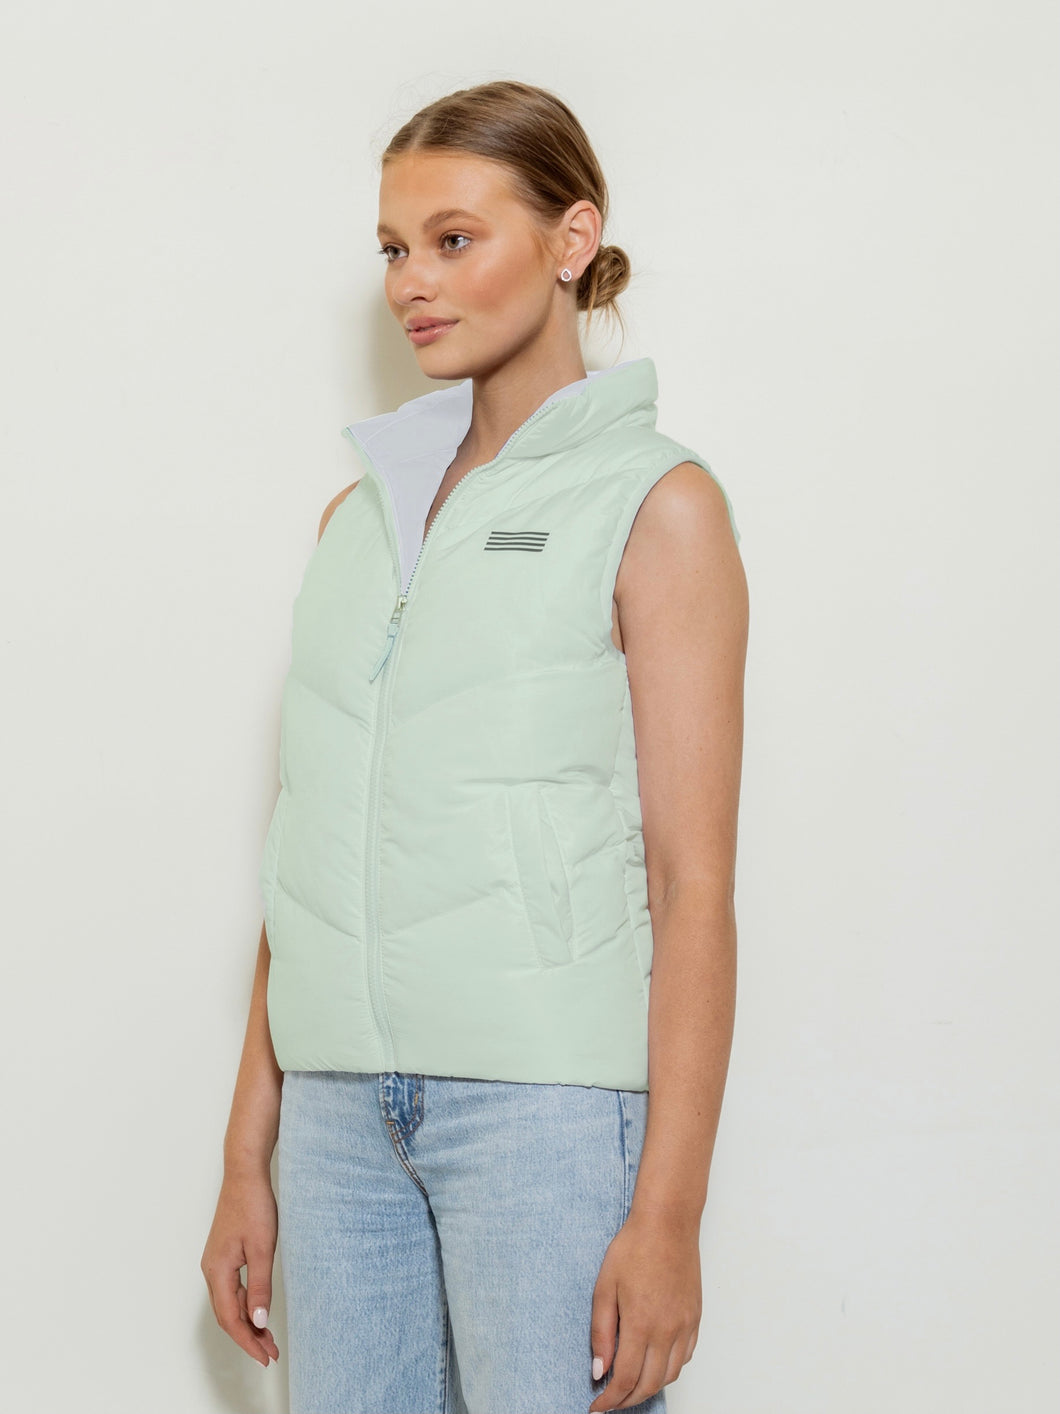 Sleeveless Puffer Vest - Mint